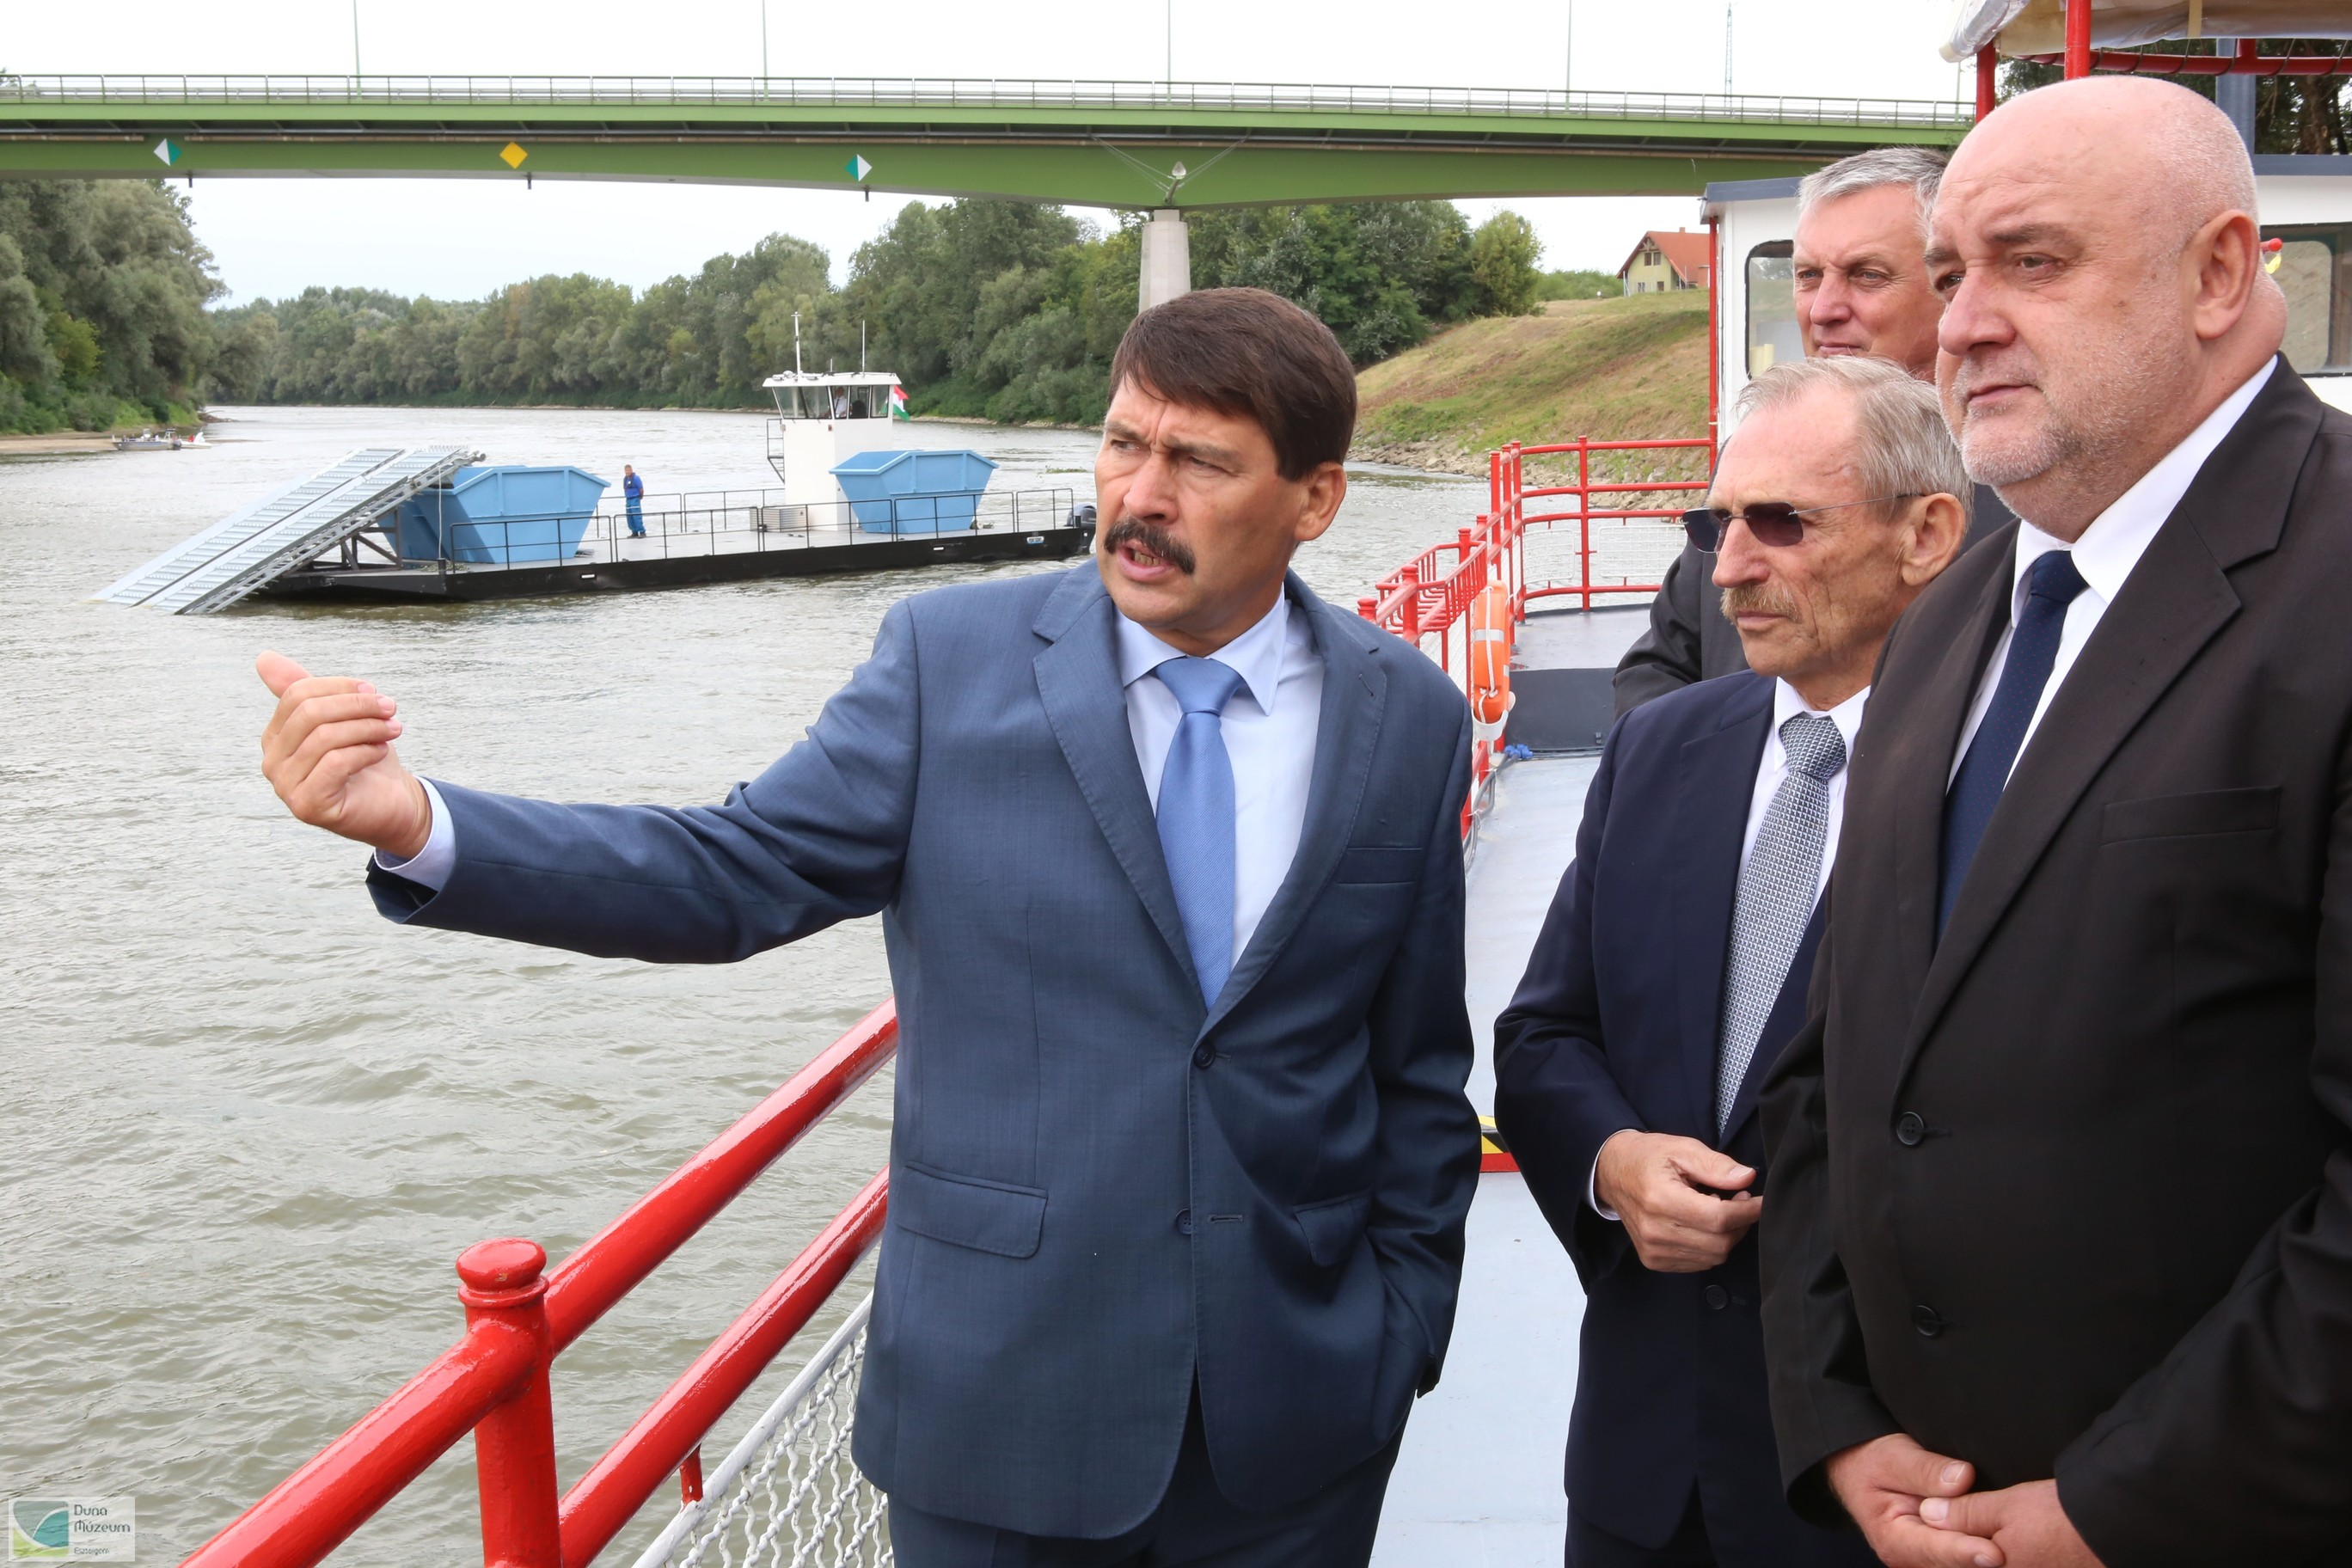 FThe Zero Waste Project on the Upper Tisza has started